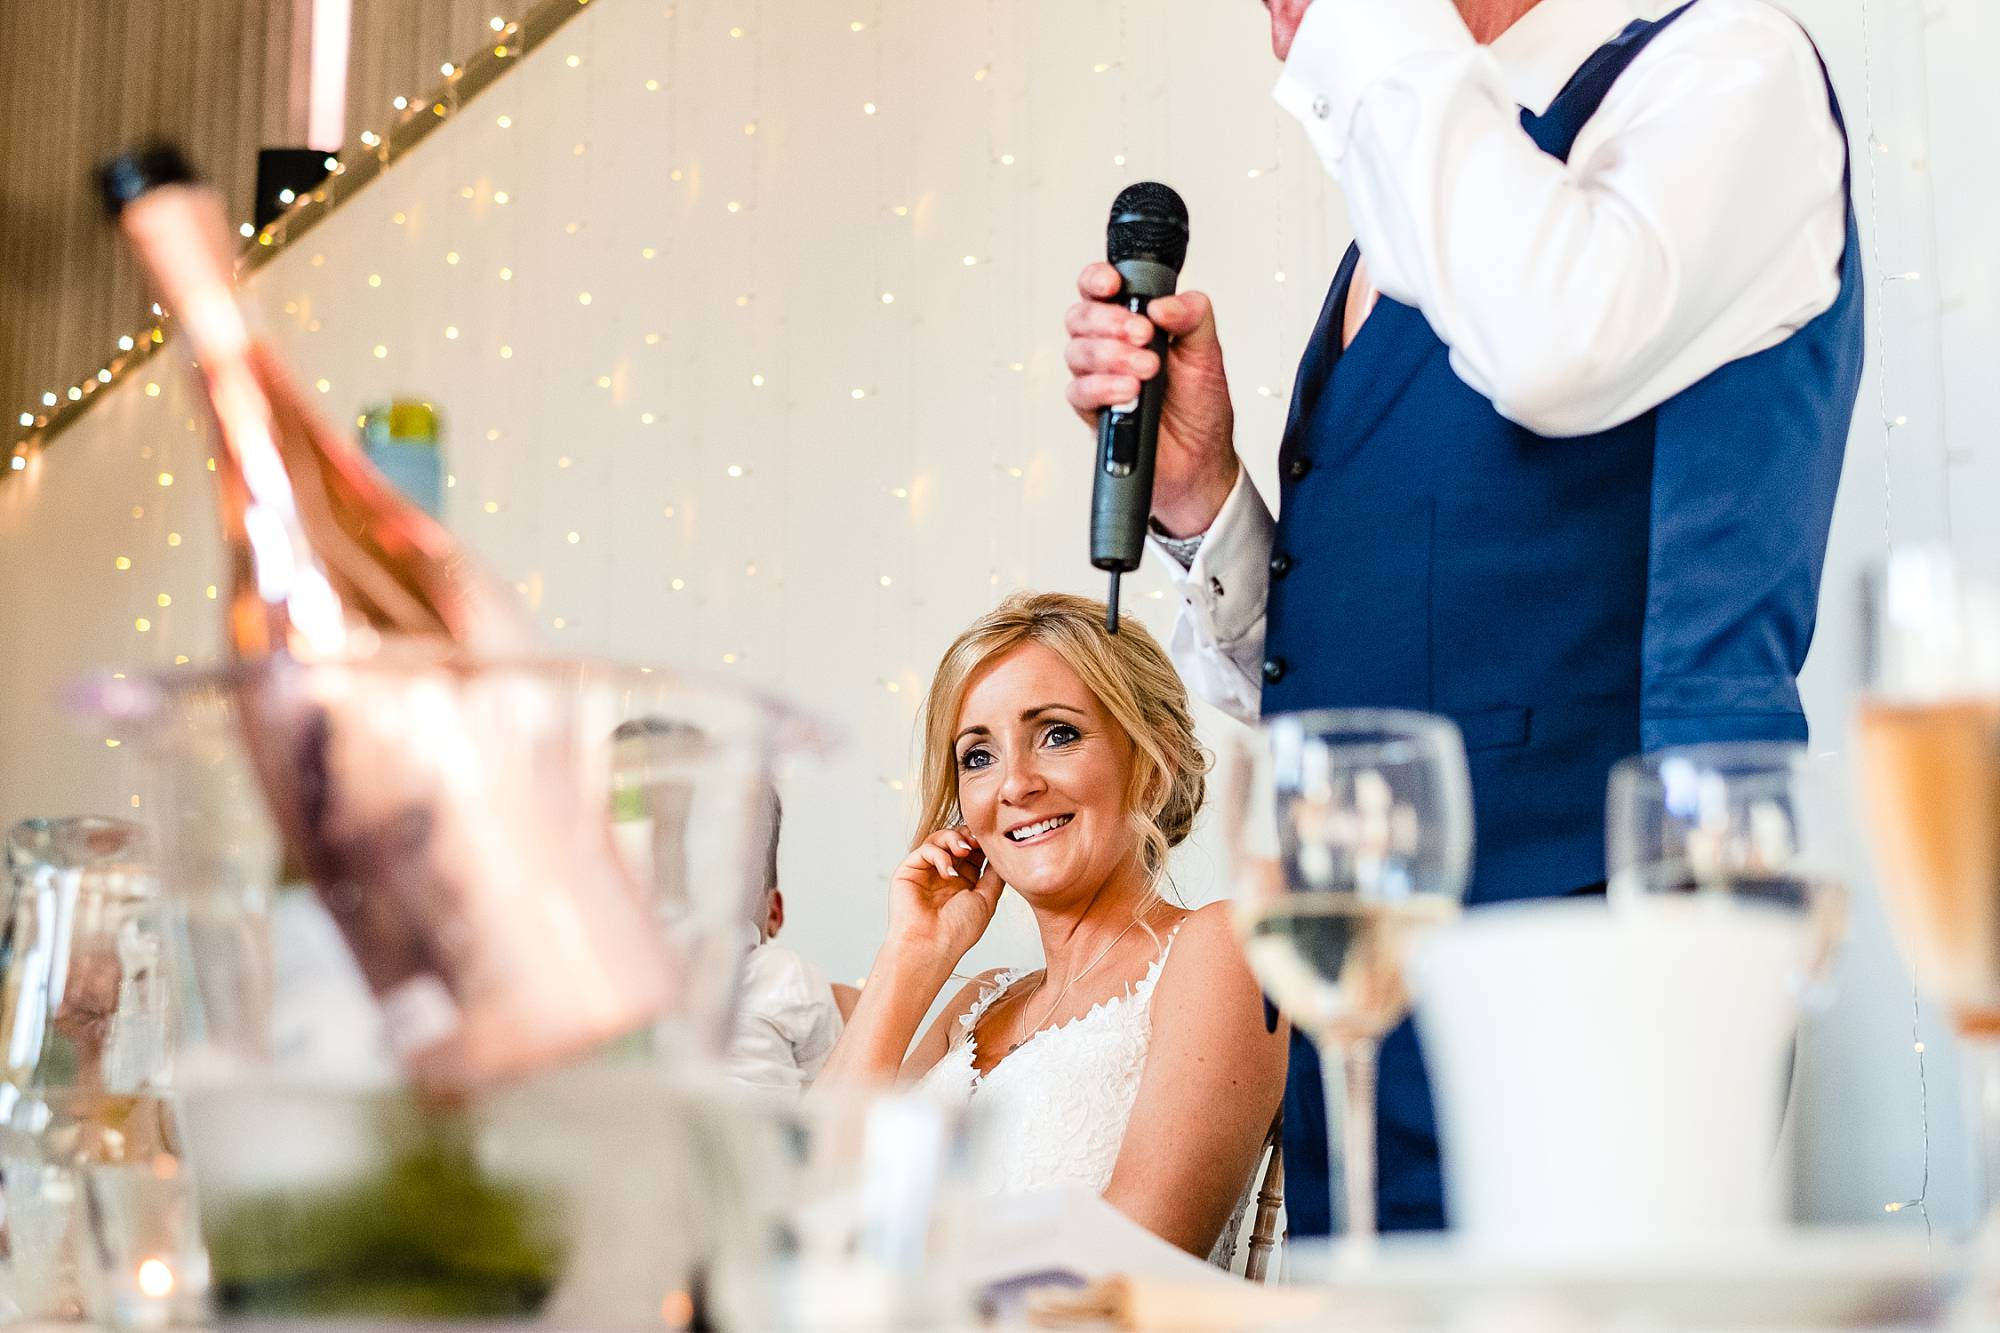 Houchins Essex Wedding Photographer_0065.jpg